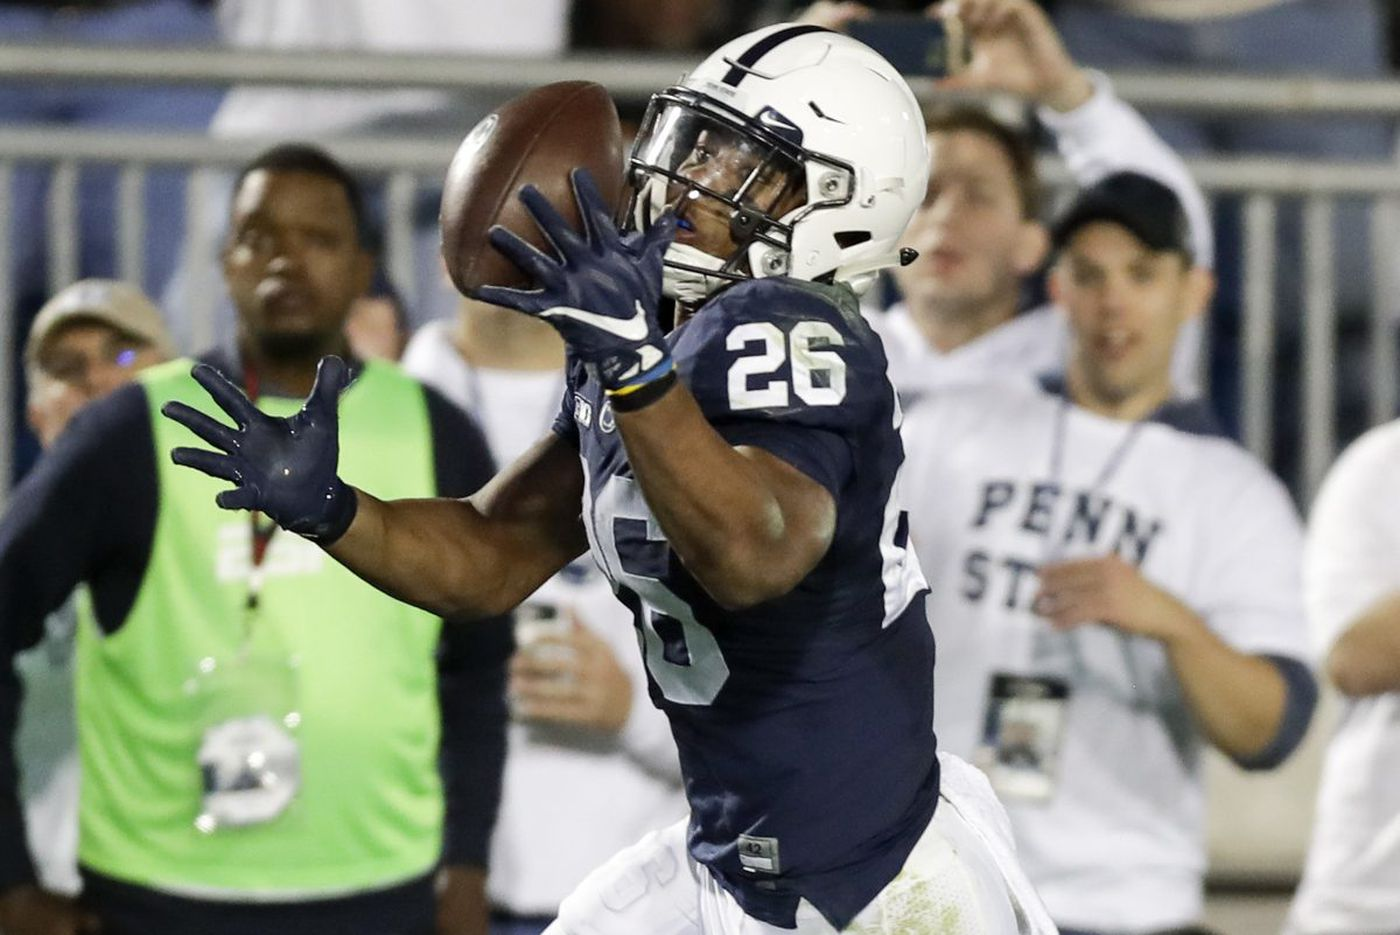 Saquon Barkley, Trace McSorley spark No. 2 Penn State to rout of No. 19 Michigan